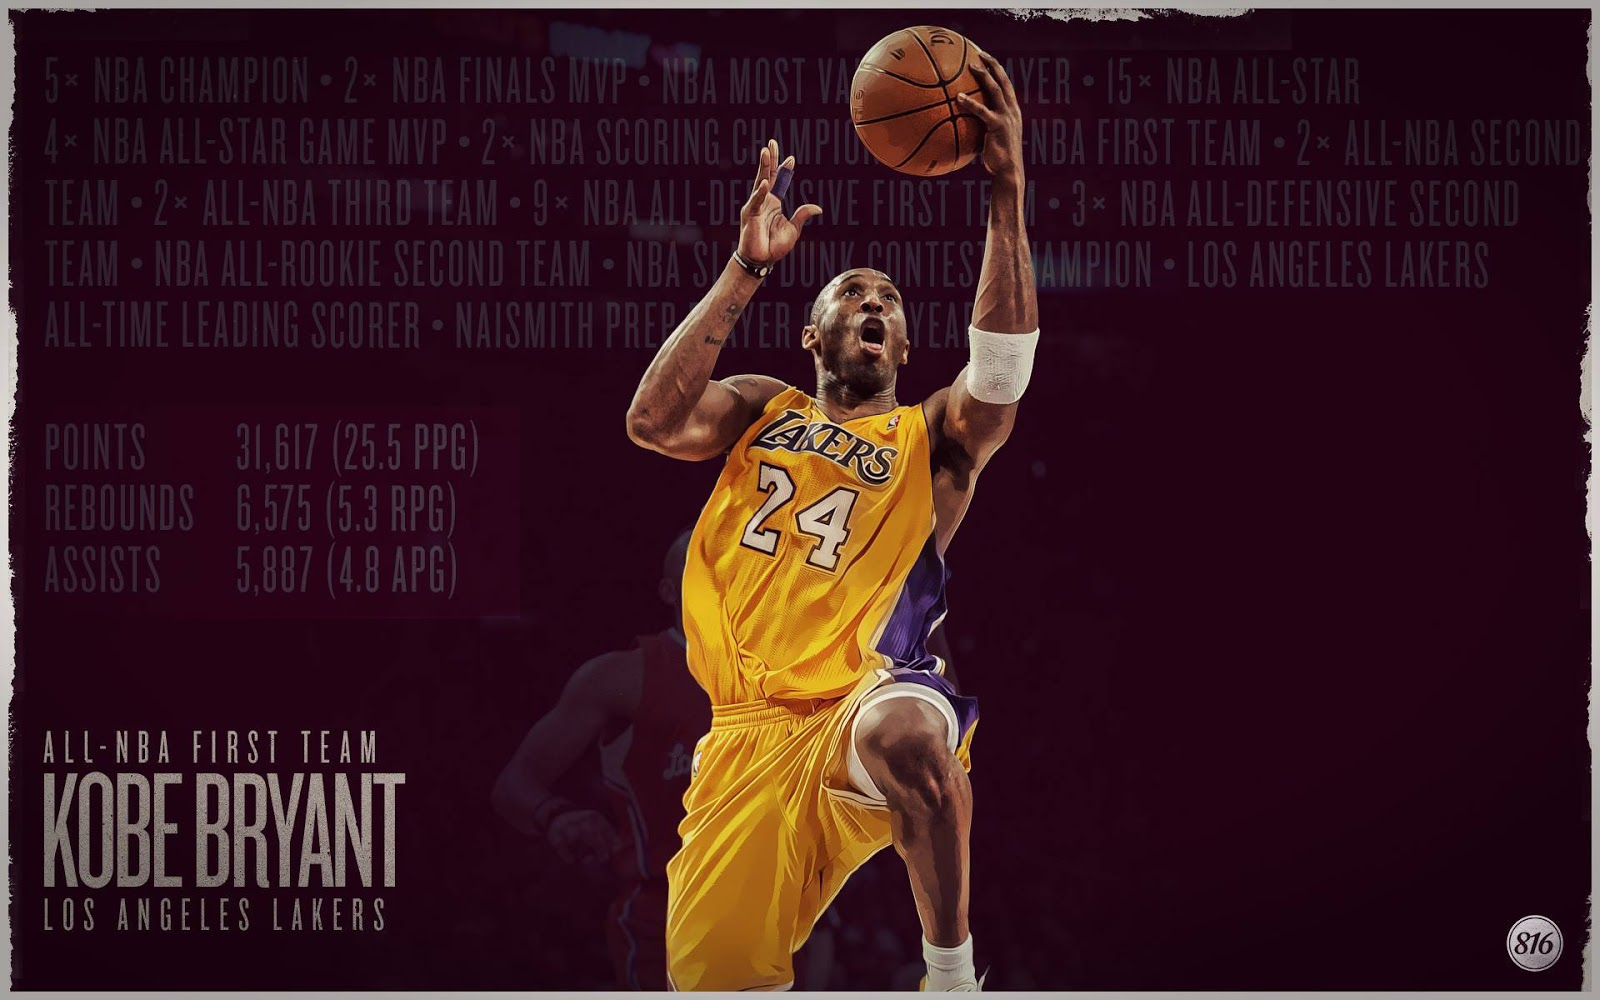 kobe bryant wallpapers hd wallpapers